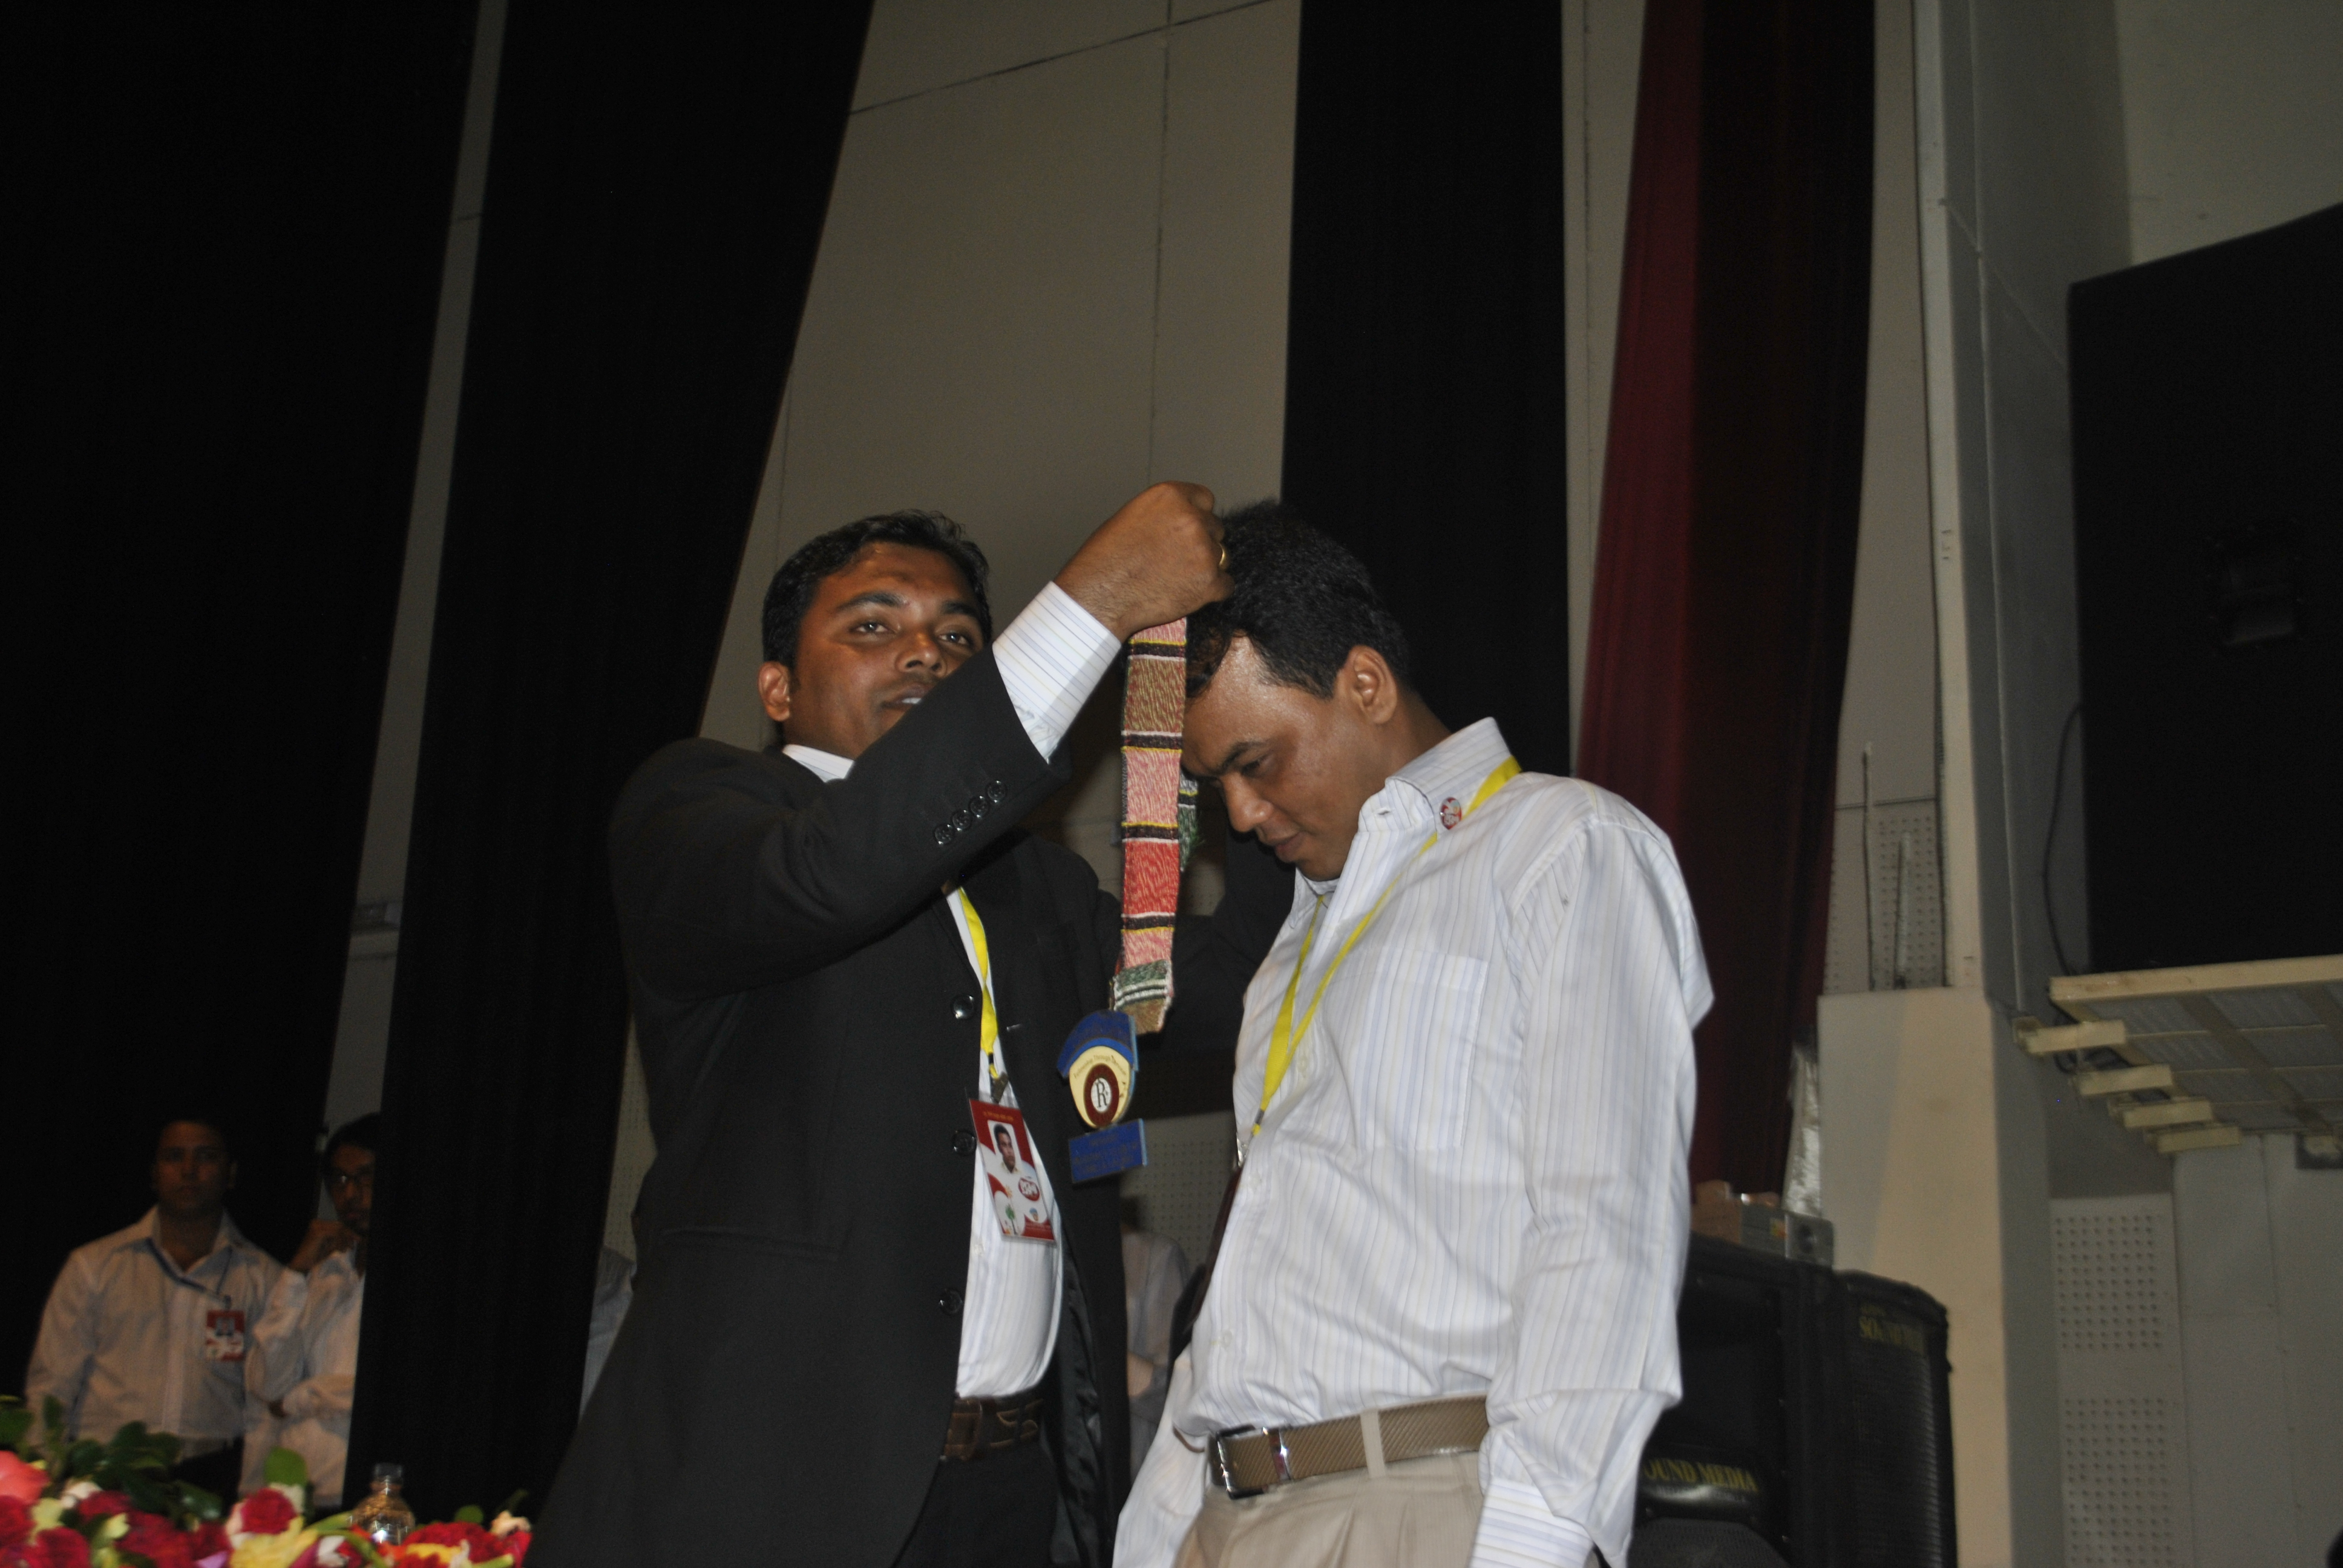 10 th Installation of Rotaract Club of Comilla Lalmai on 12 October 2012.